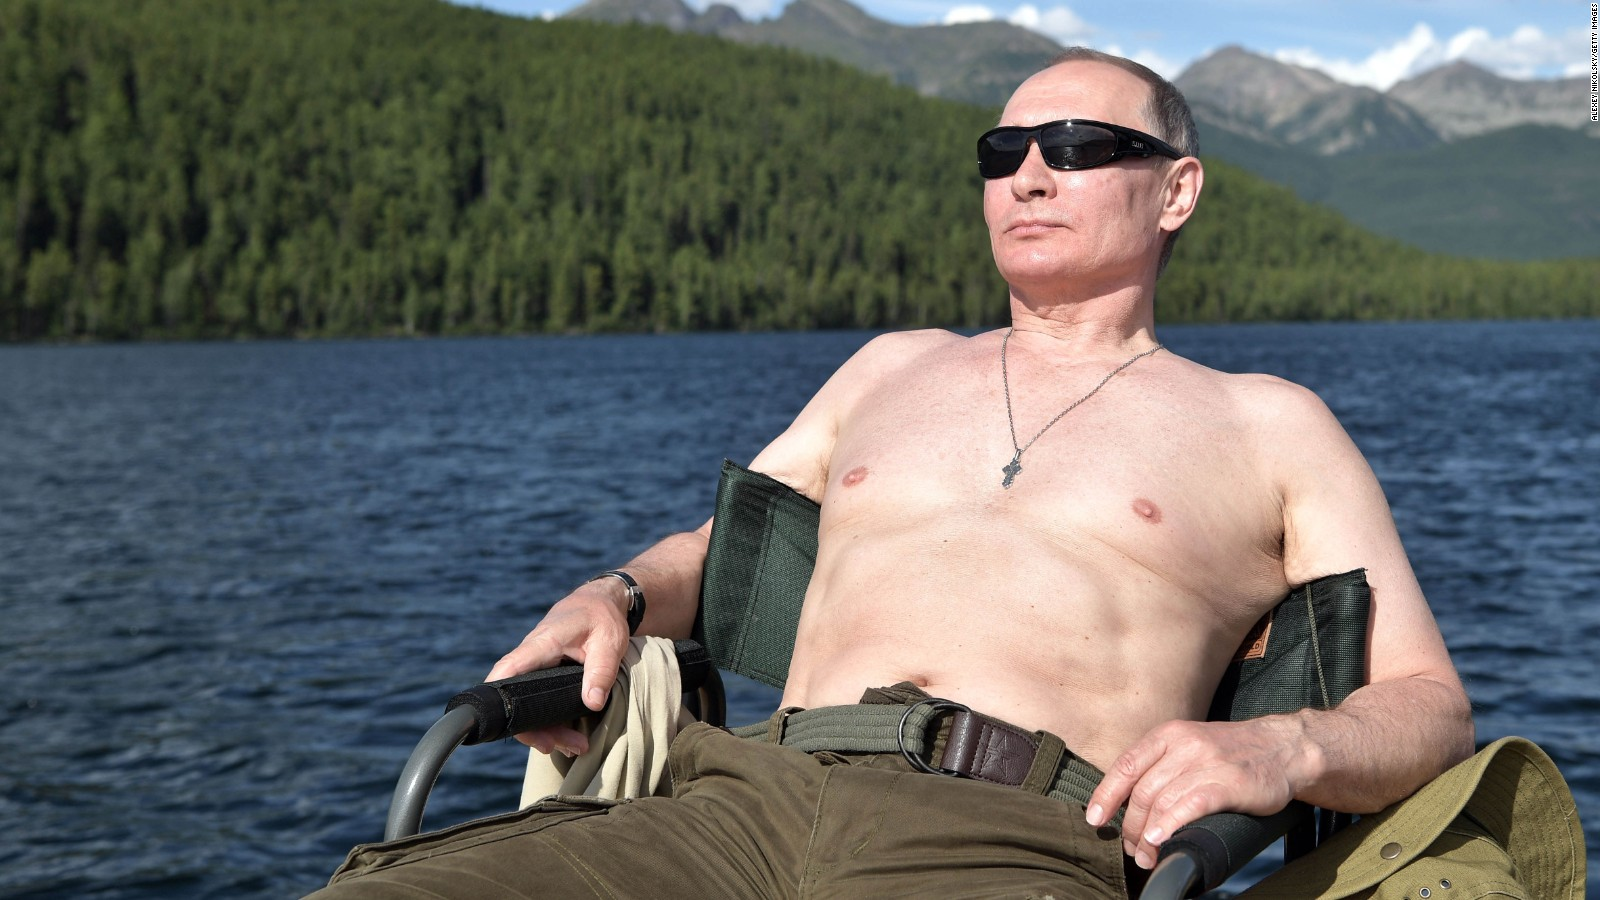 Vladimir Putin Boats Sunbathes And Picks Mushrooms In His Russian Vacation Photos